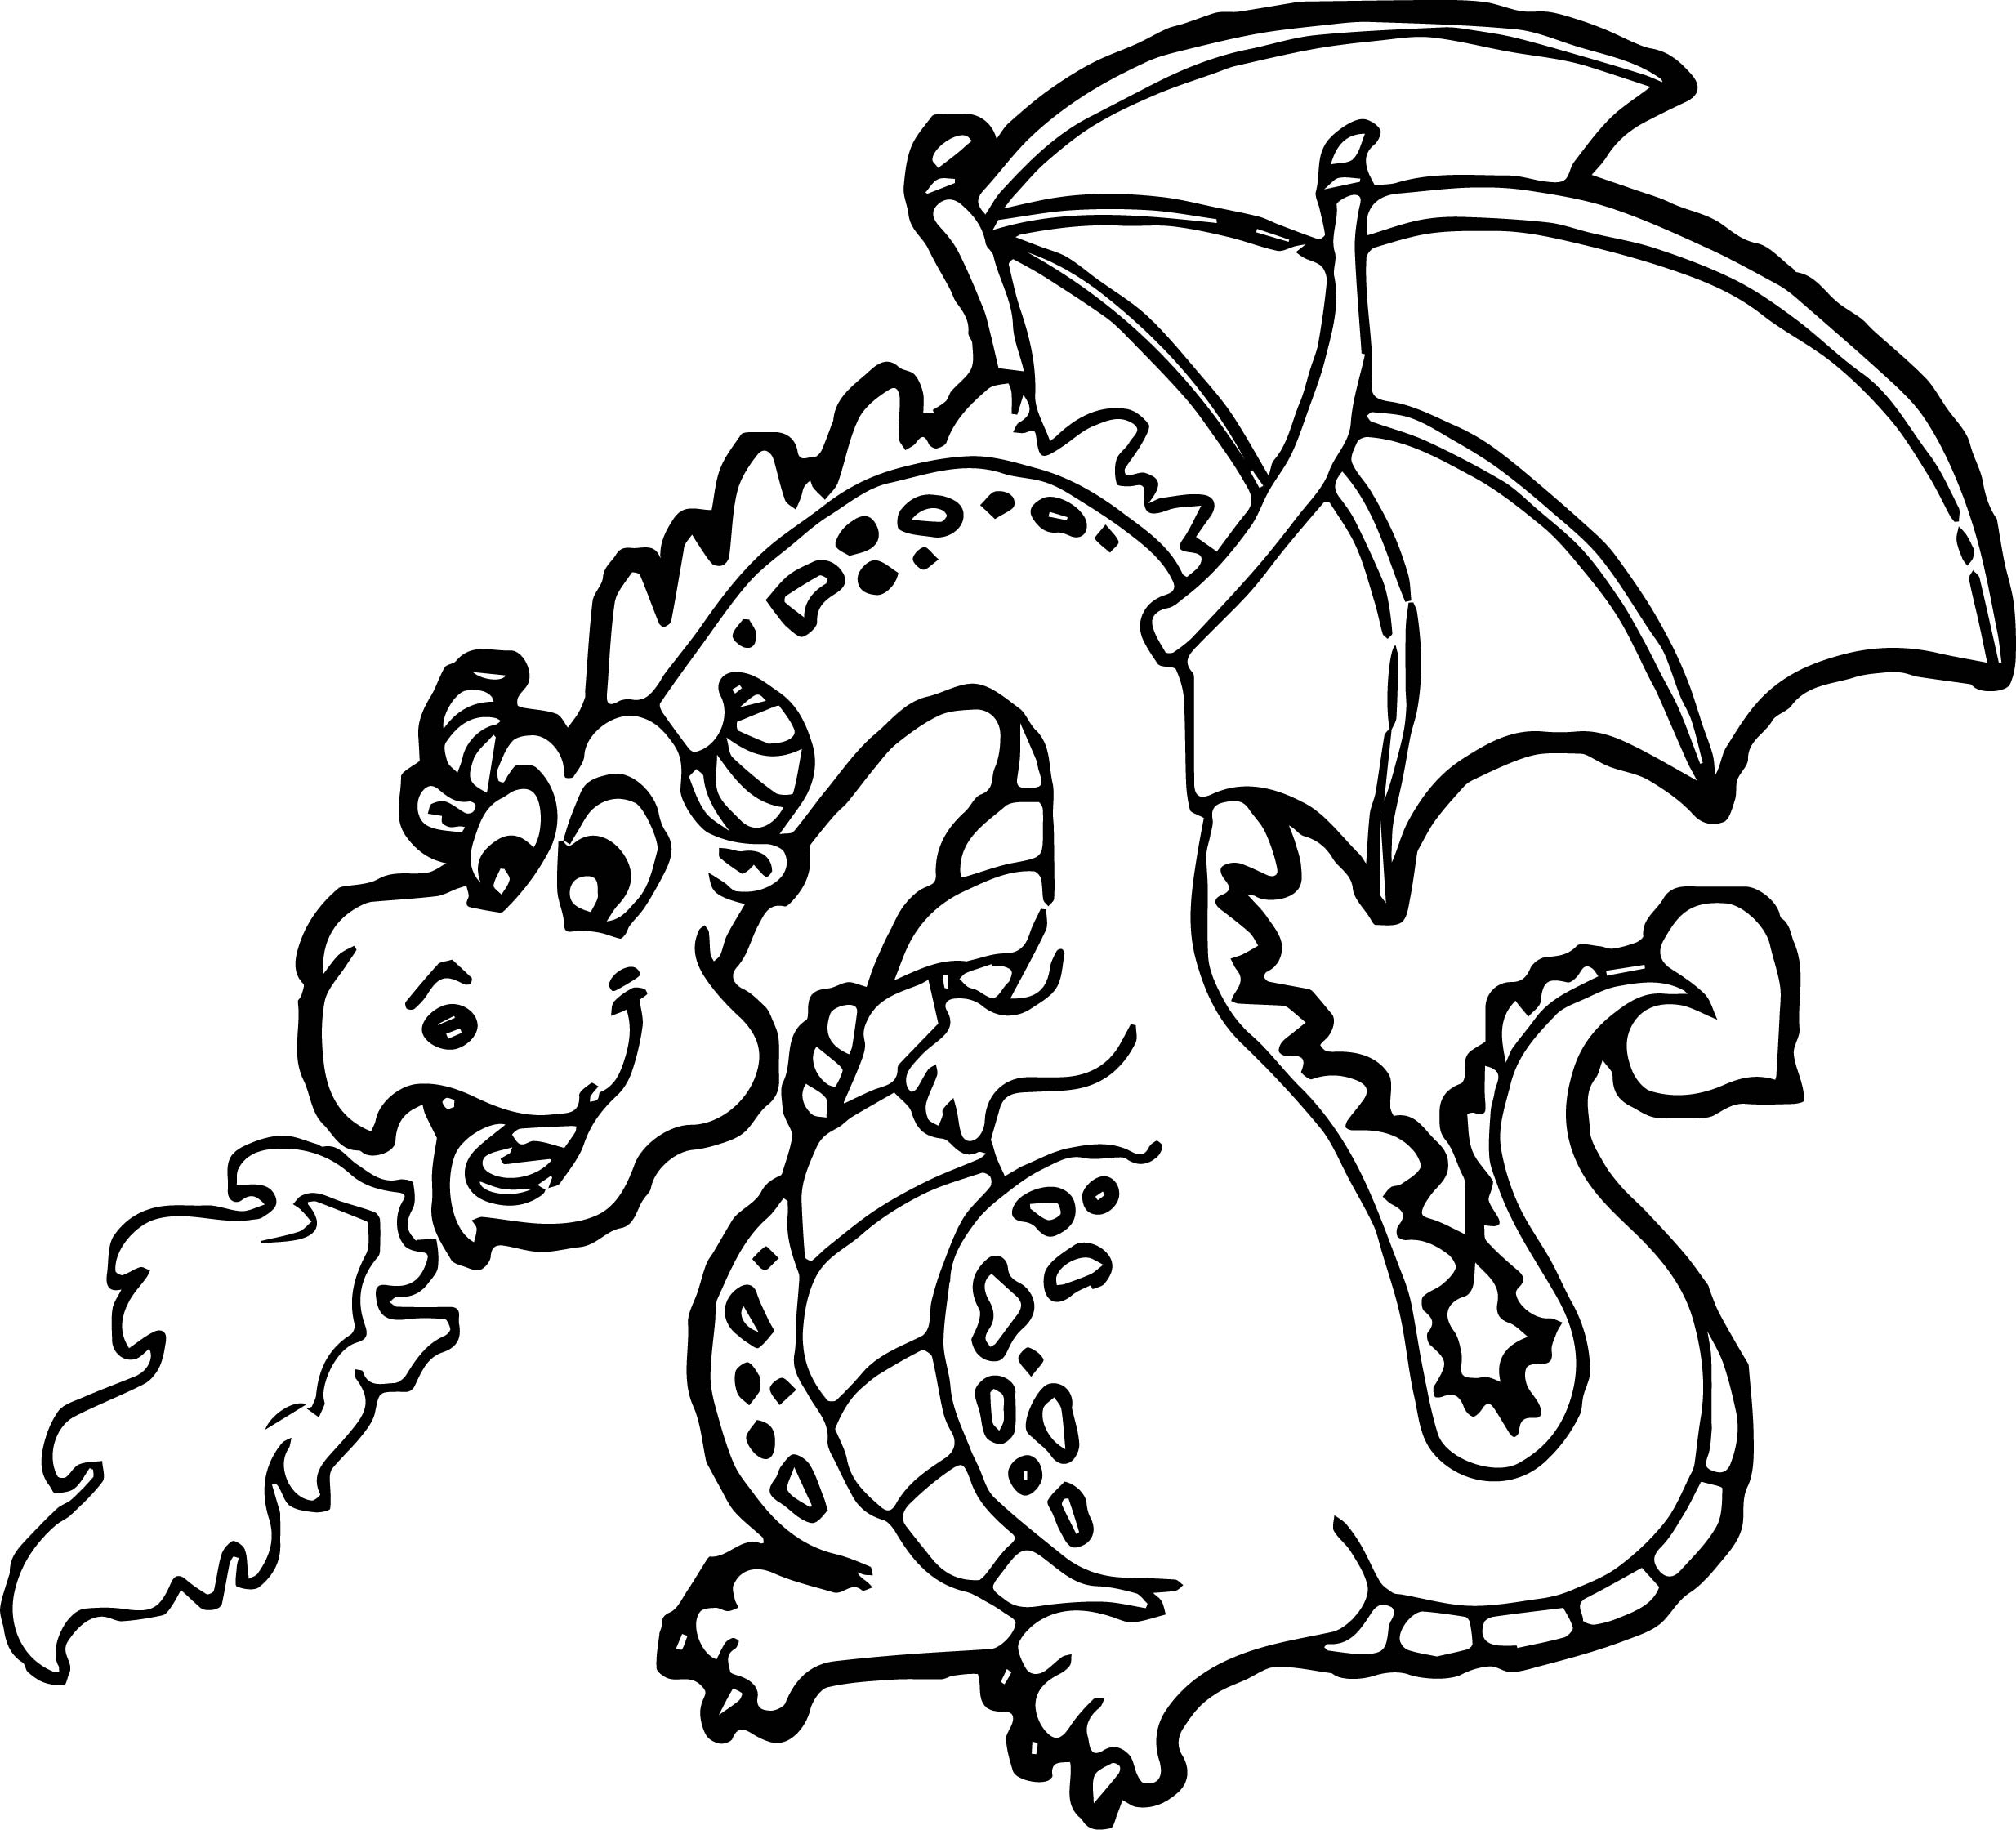 cartoon dragon coloring pages - photo#23